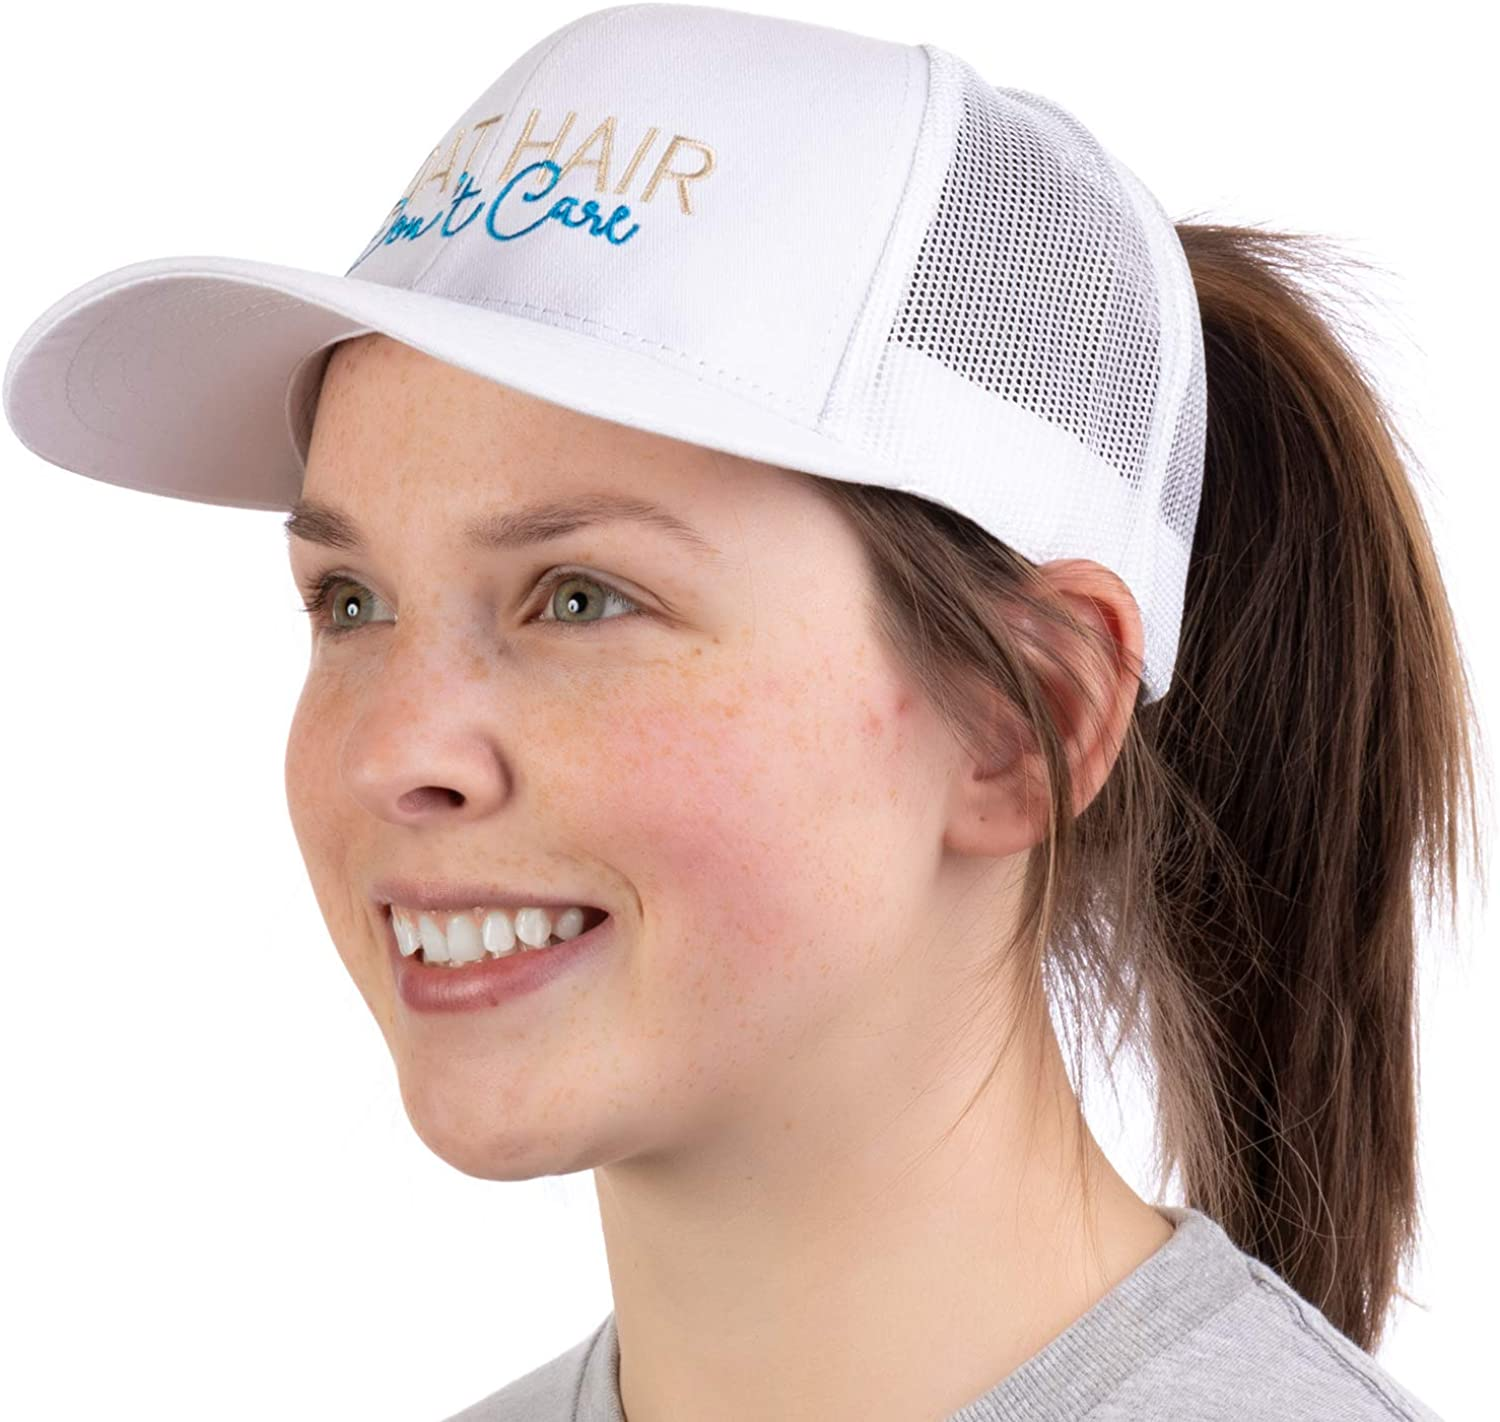 Boat Hair, Don't Care   Ponytail Trucker Hat, Boating Lake Cute Pony Tail Cap